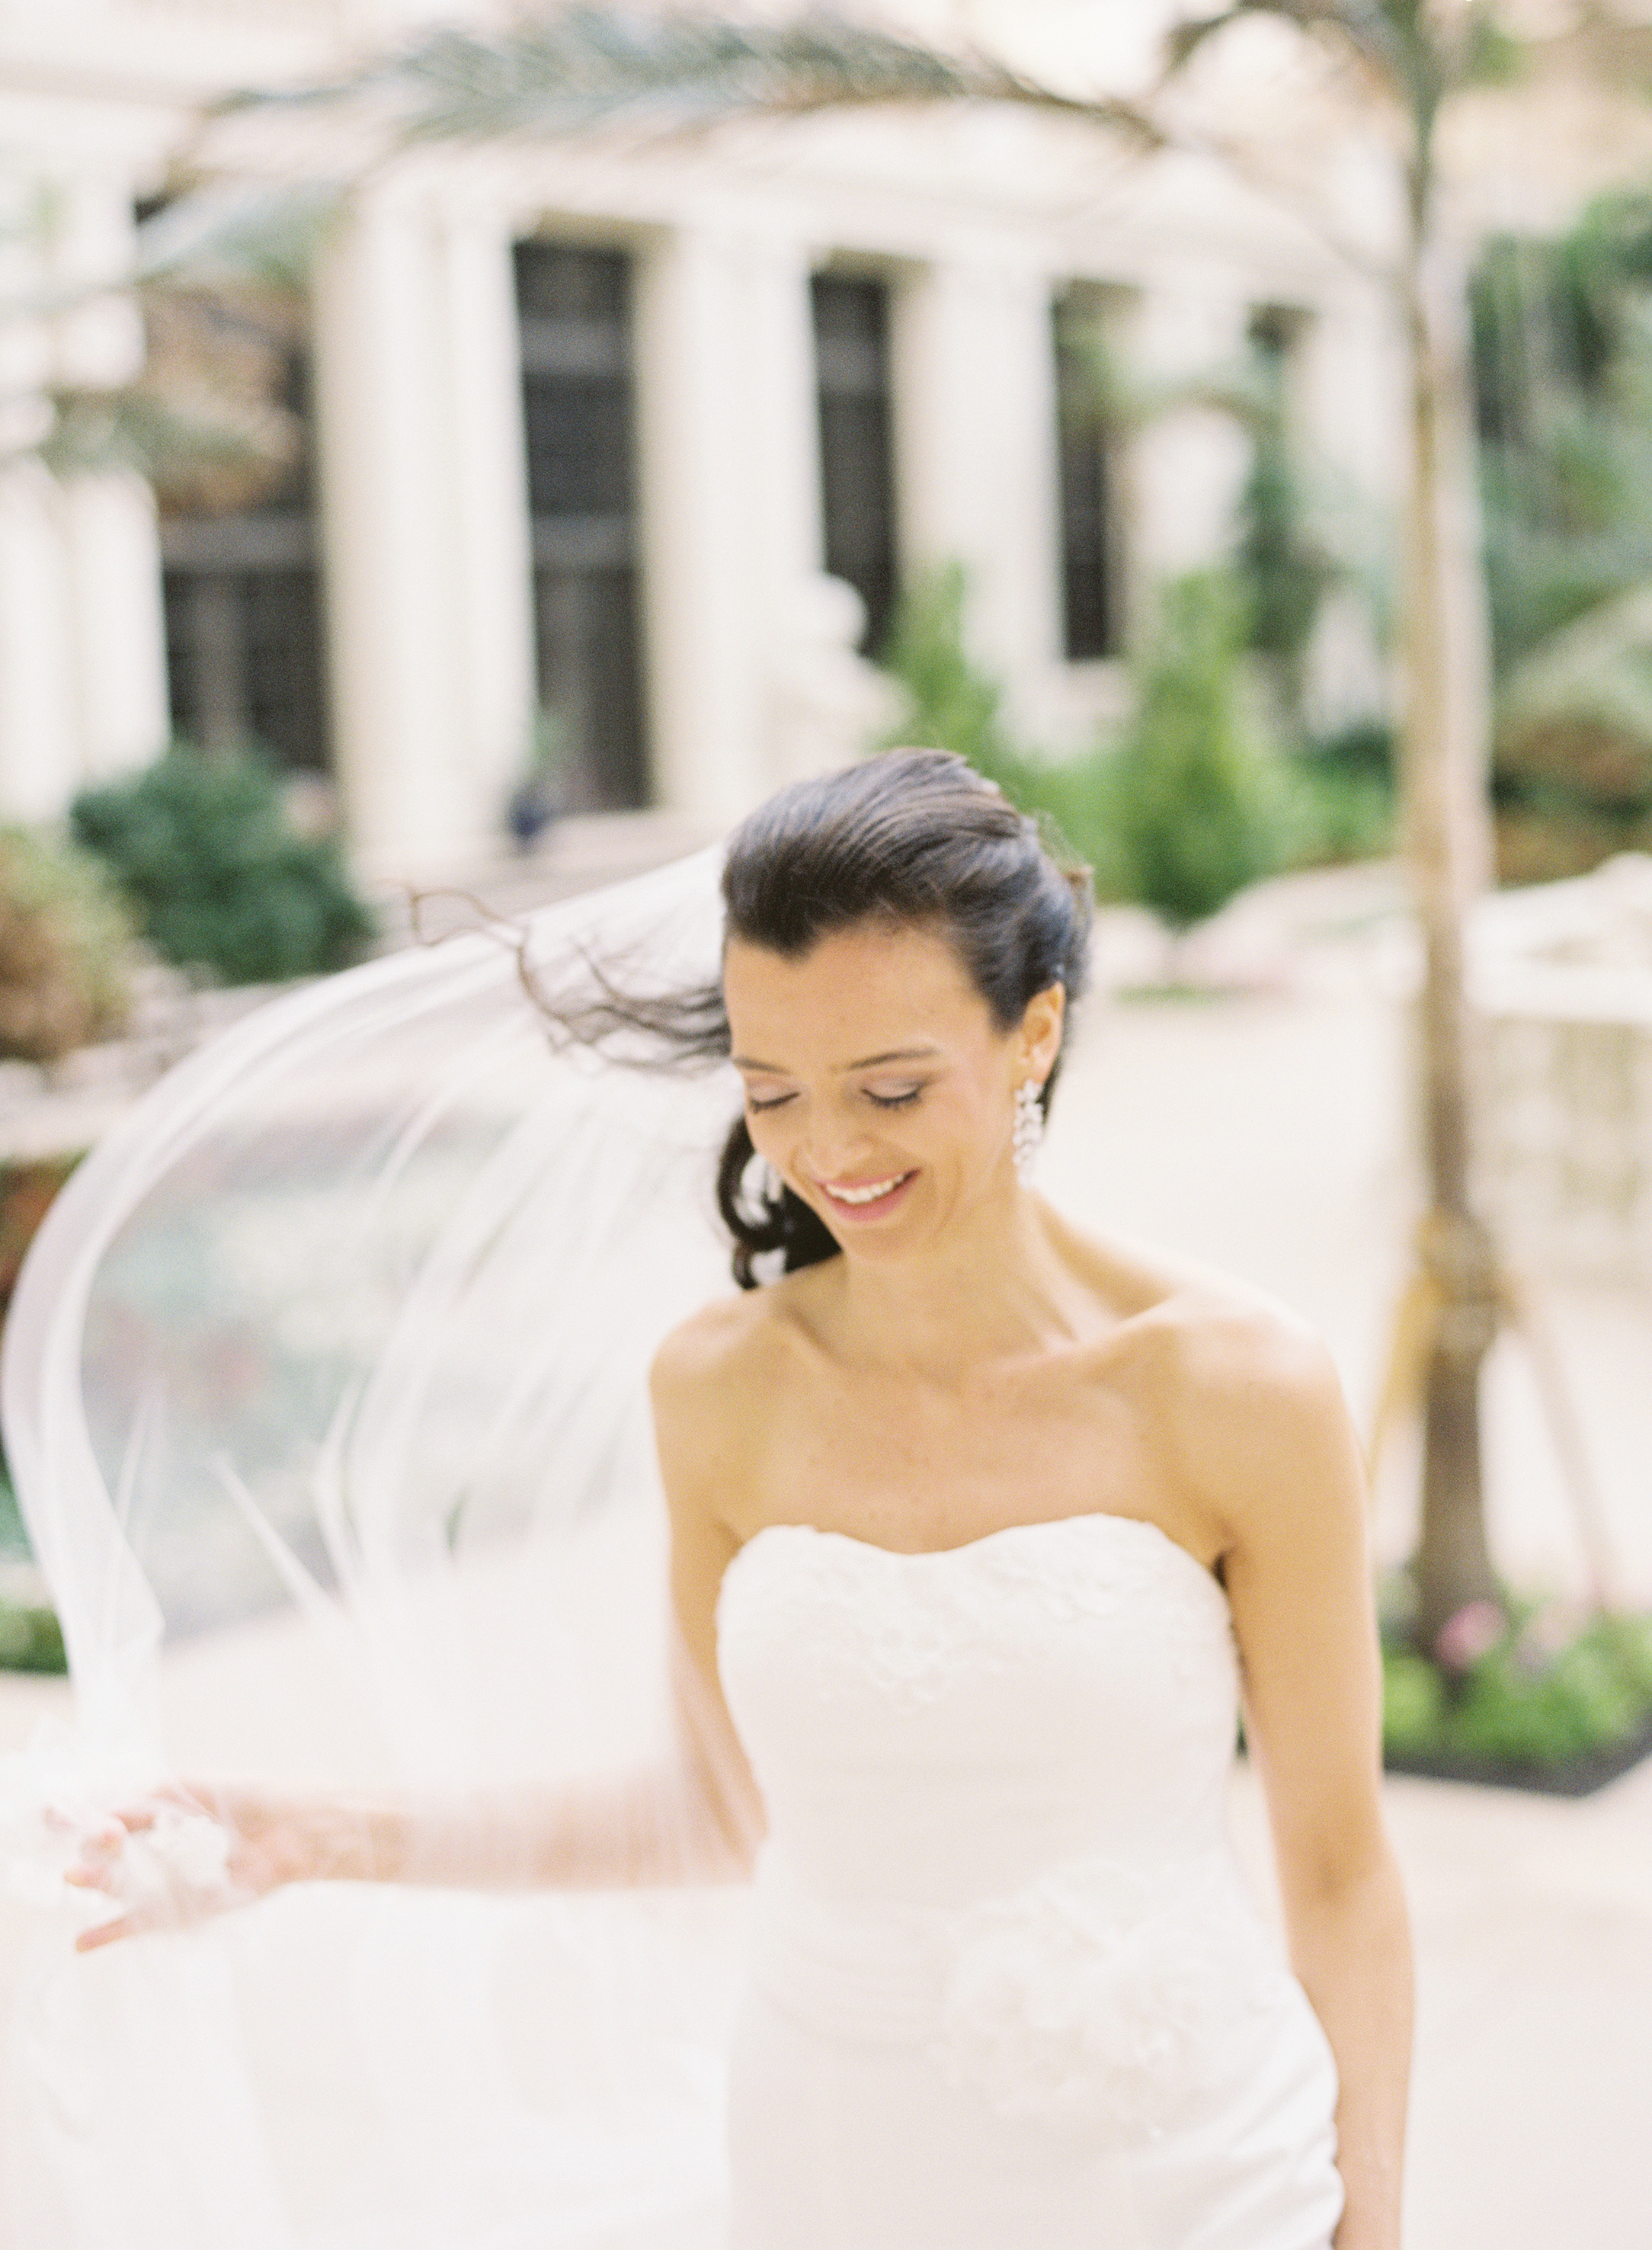 Veils, Fashion, white, Bride, Veil, Florida, Karina mike